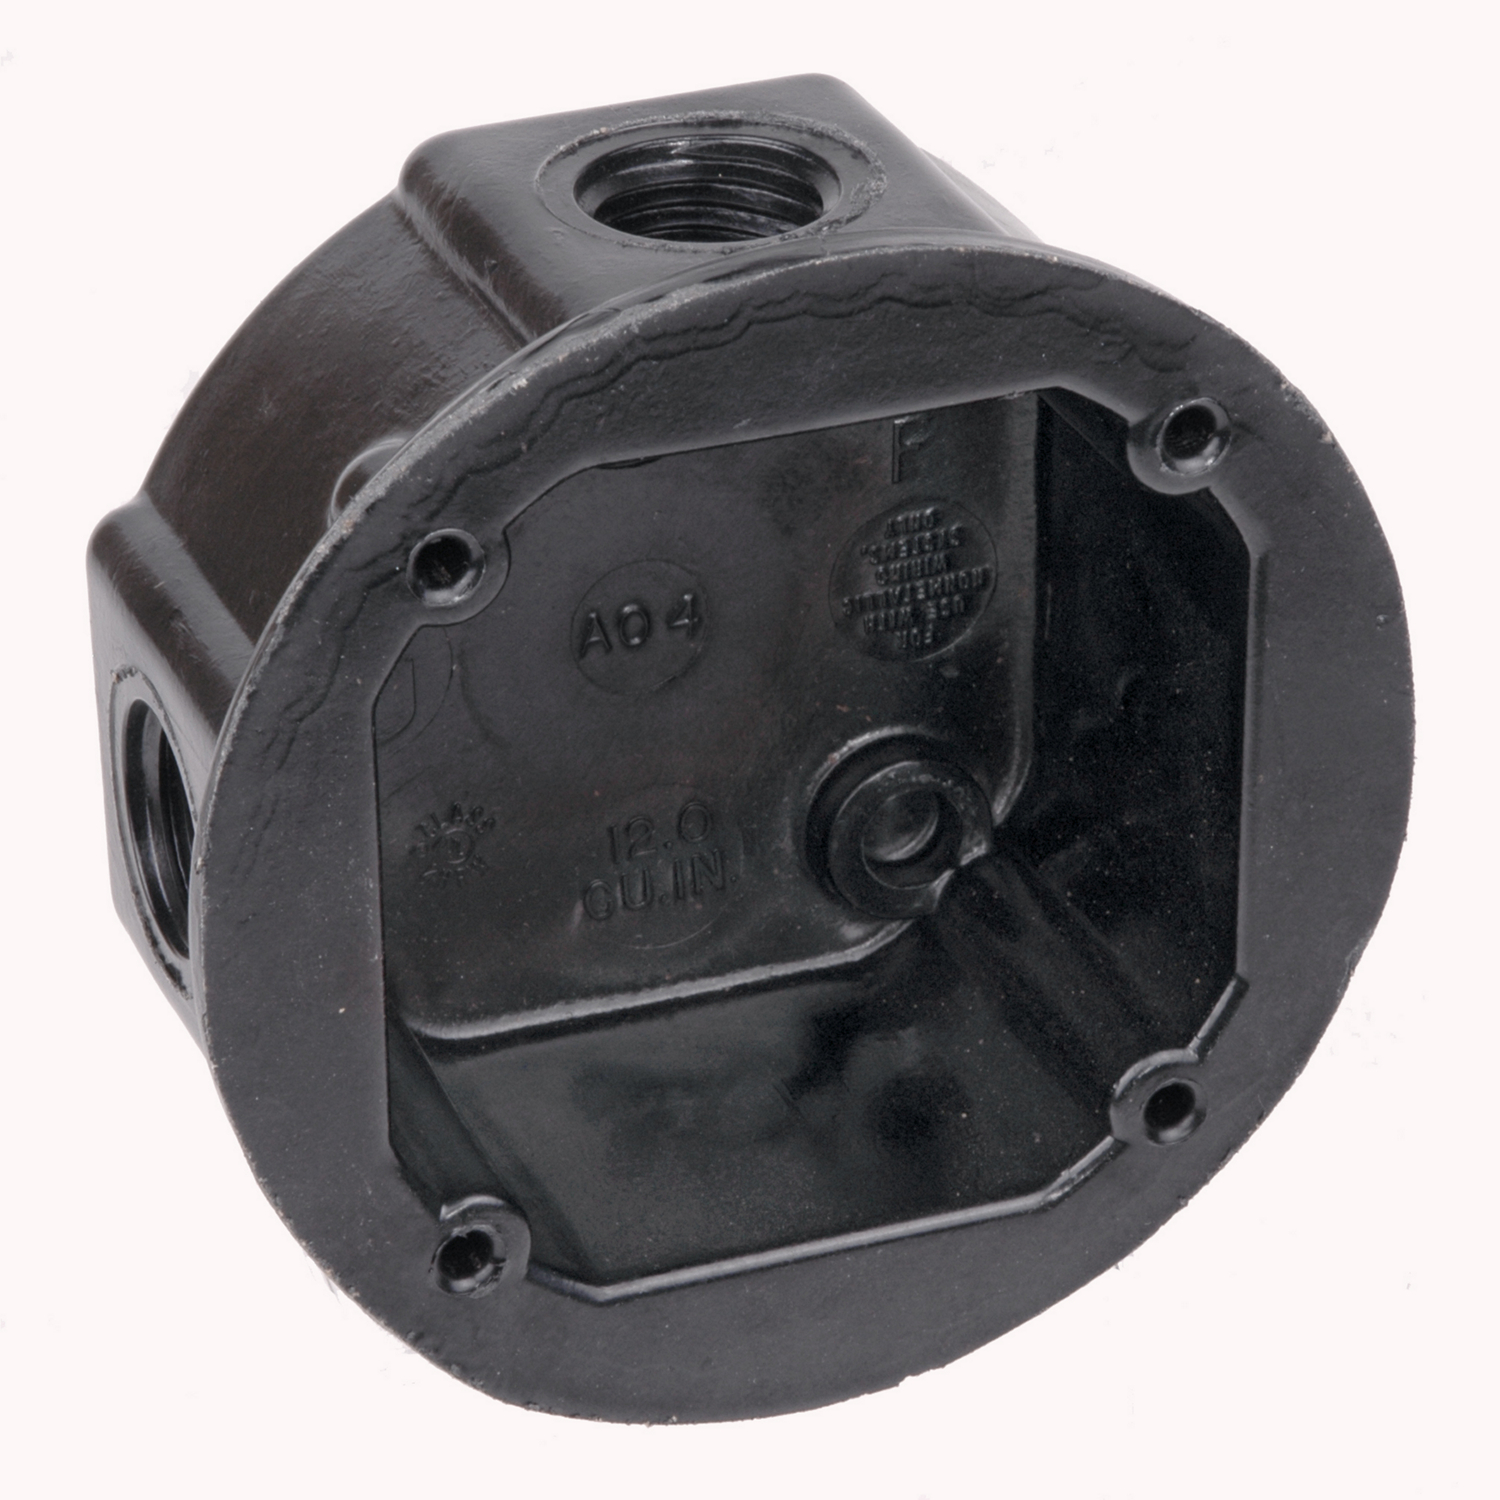 UNION AO4-12 ROUND CONDUIT BOX